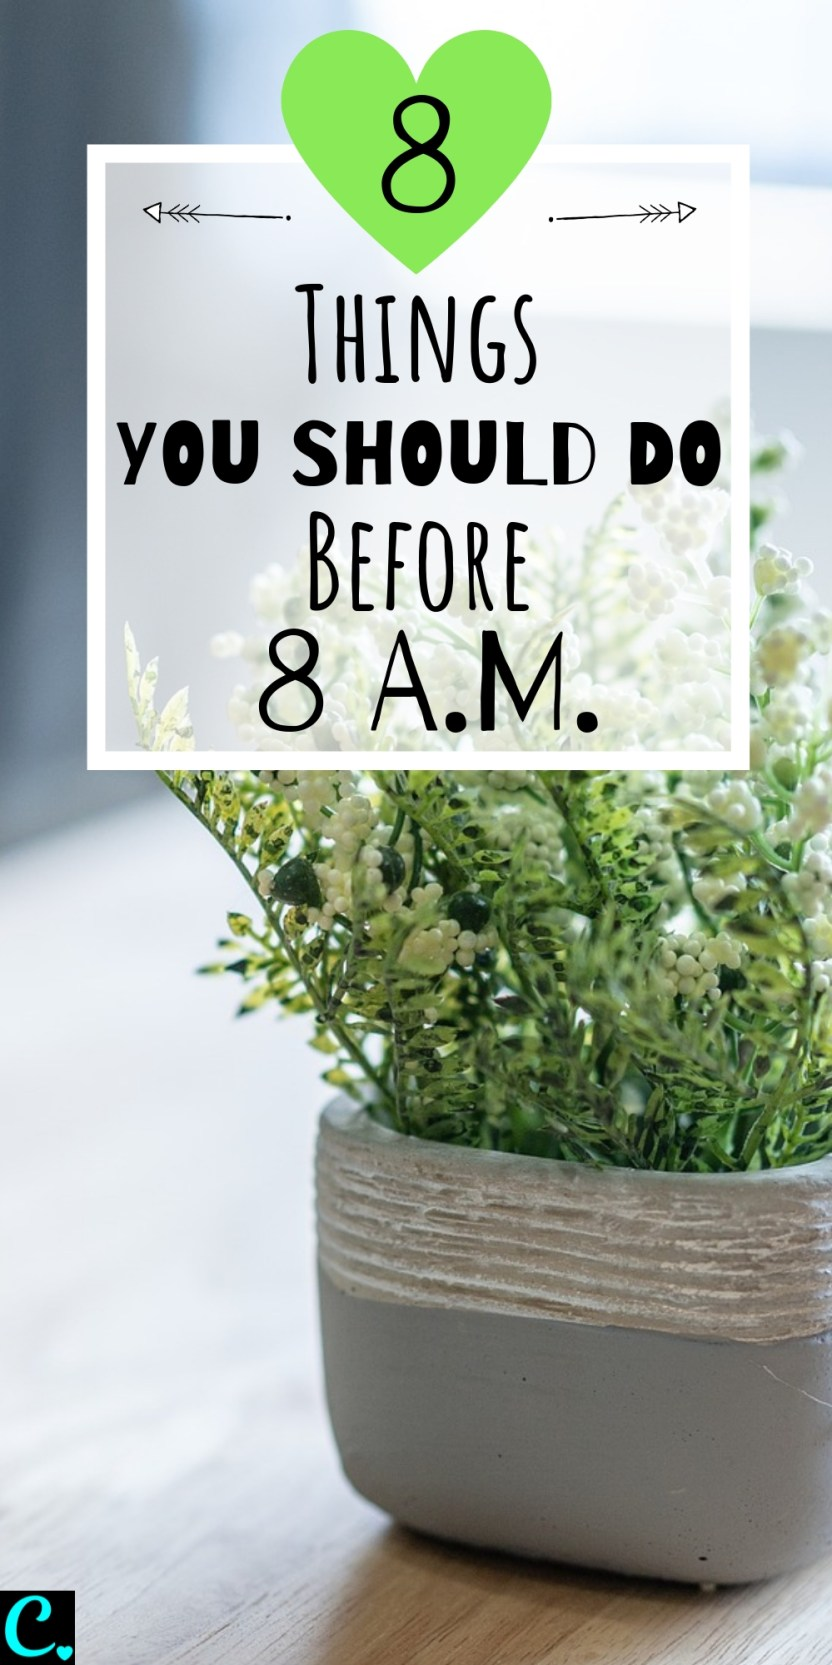 The Best Morning Routine: 8 Things To Do Before 8 A.M. | How to be productive | Personal development | Productivity tips | Habits for success | Via: https://captivatingcrazy.com #captivatingcrazy